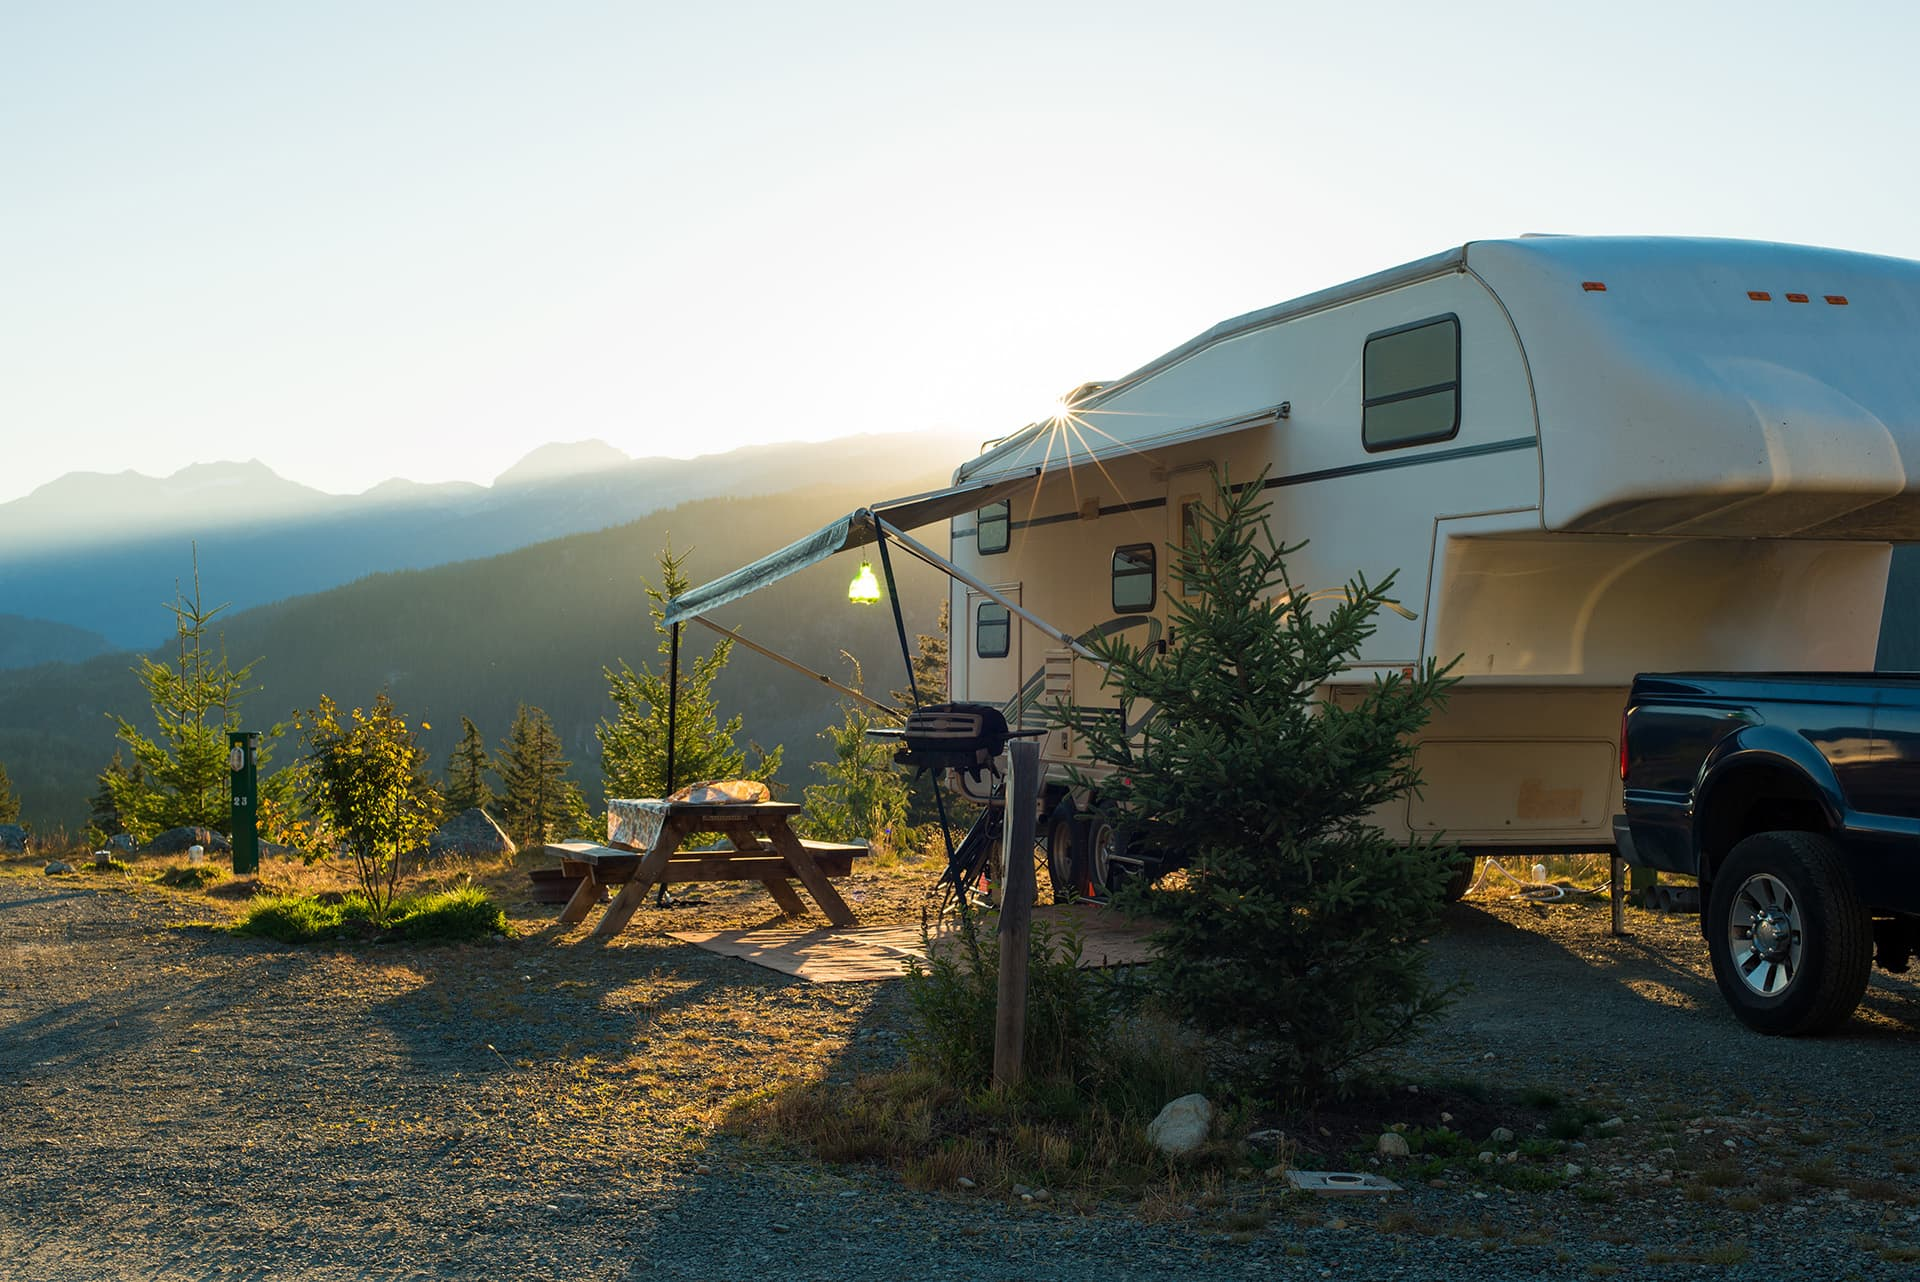 RV & motorhome insurance for trailer parked at a camp site in the mountains